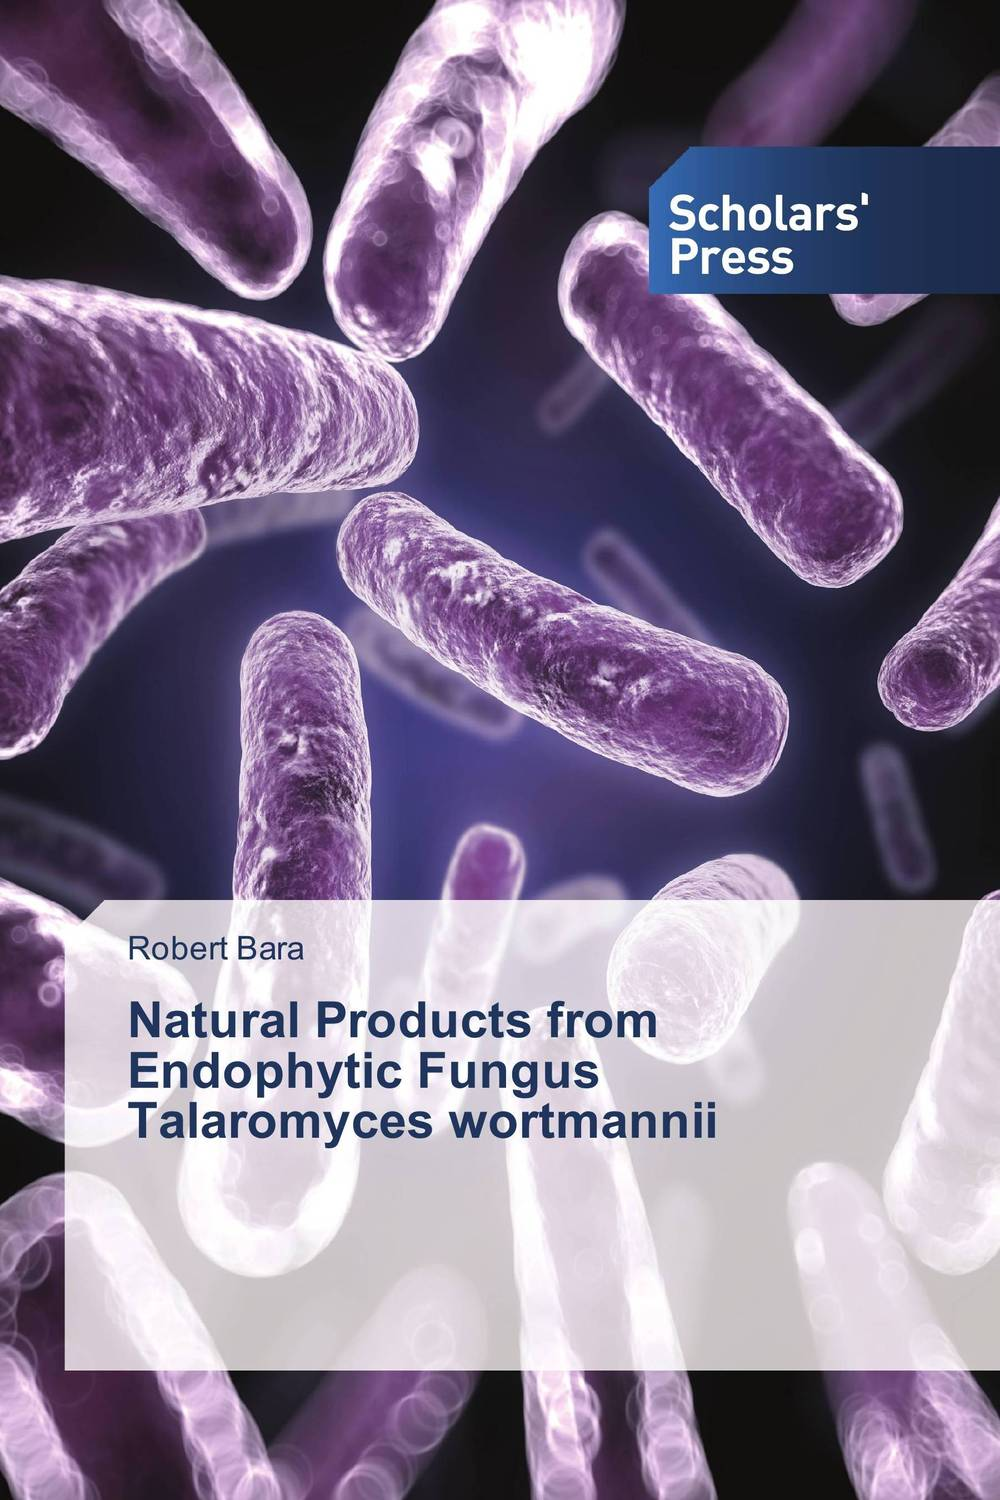 Natural Products from Endophytic Fungus Talaromyces wortmannii jacob delafon ola 60 exs112 00